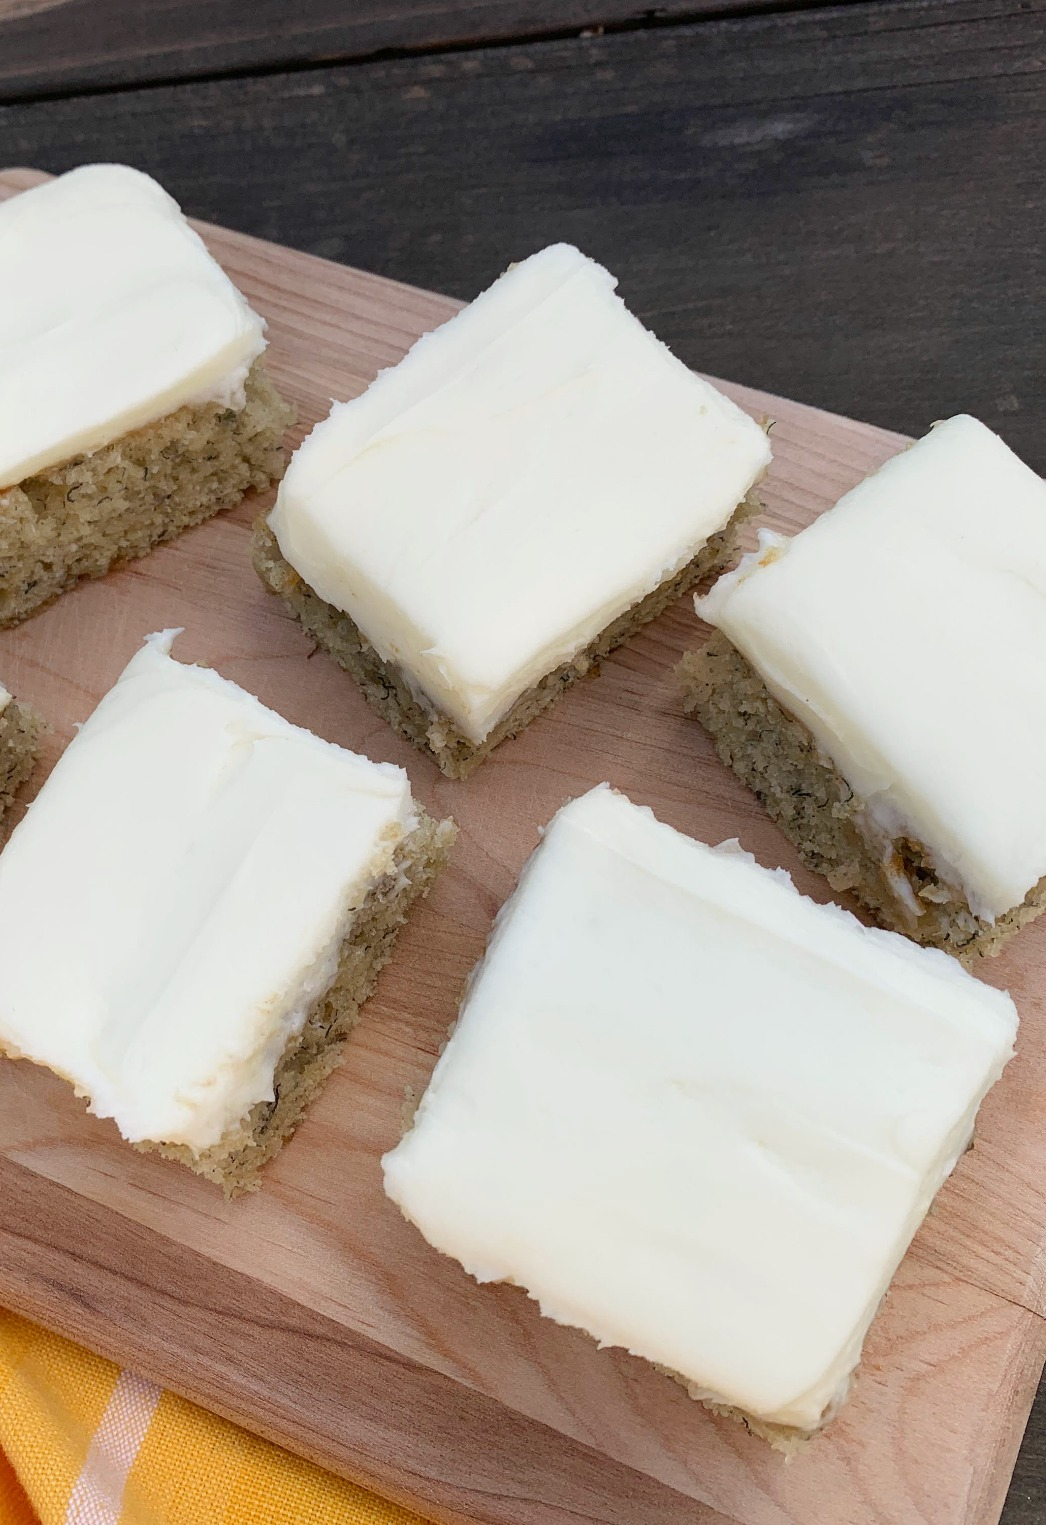 a wooden cutting board with slices of banana cake with cream cheese frosting